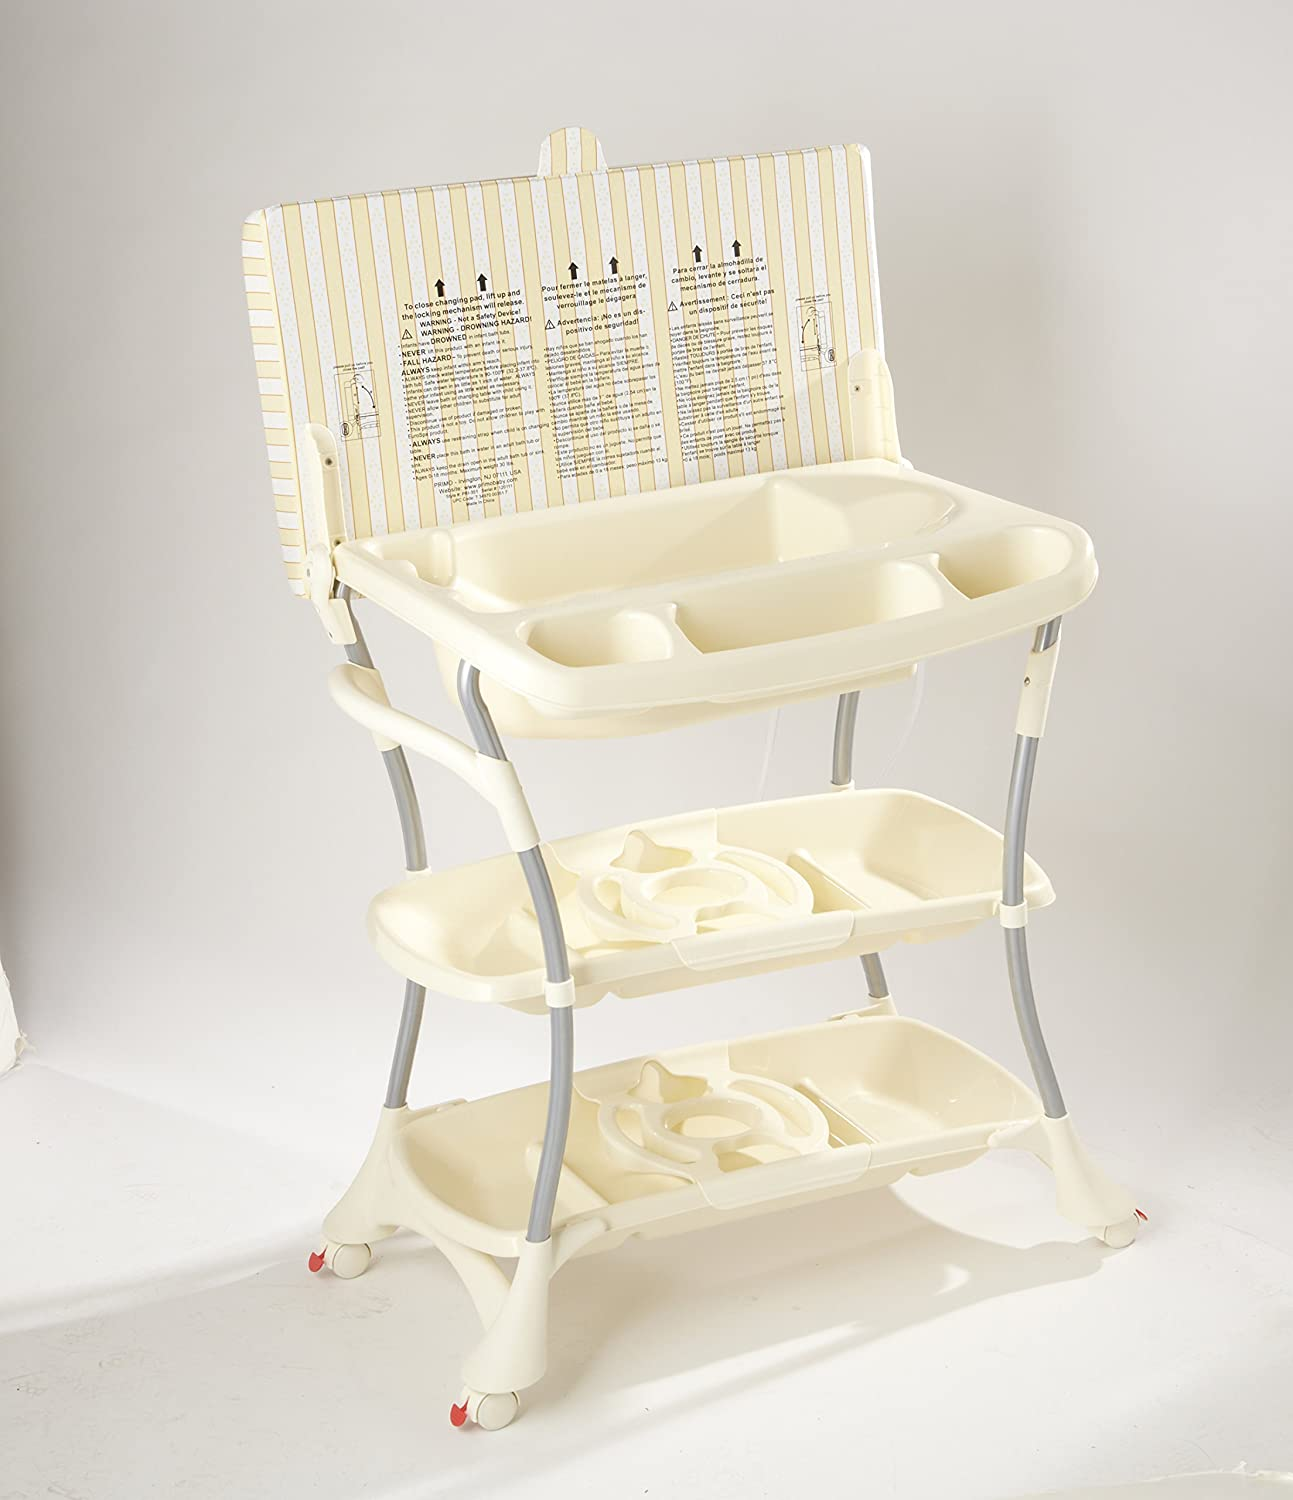 Primo EuroSpa Baby Bath and Changing Table Combination, Honey/Cream 351W